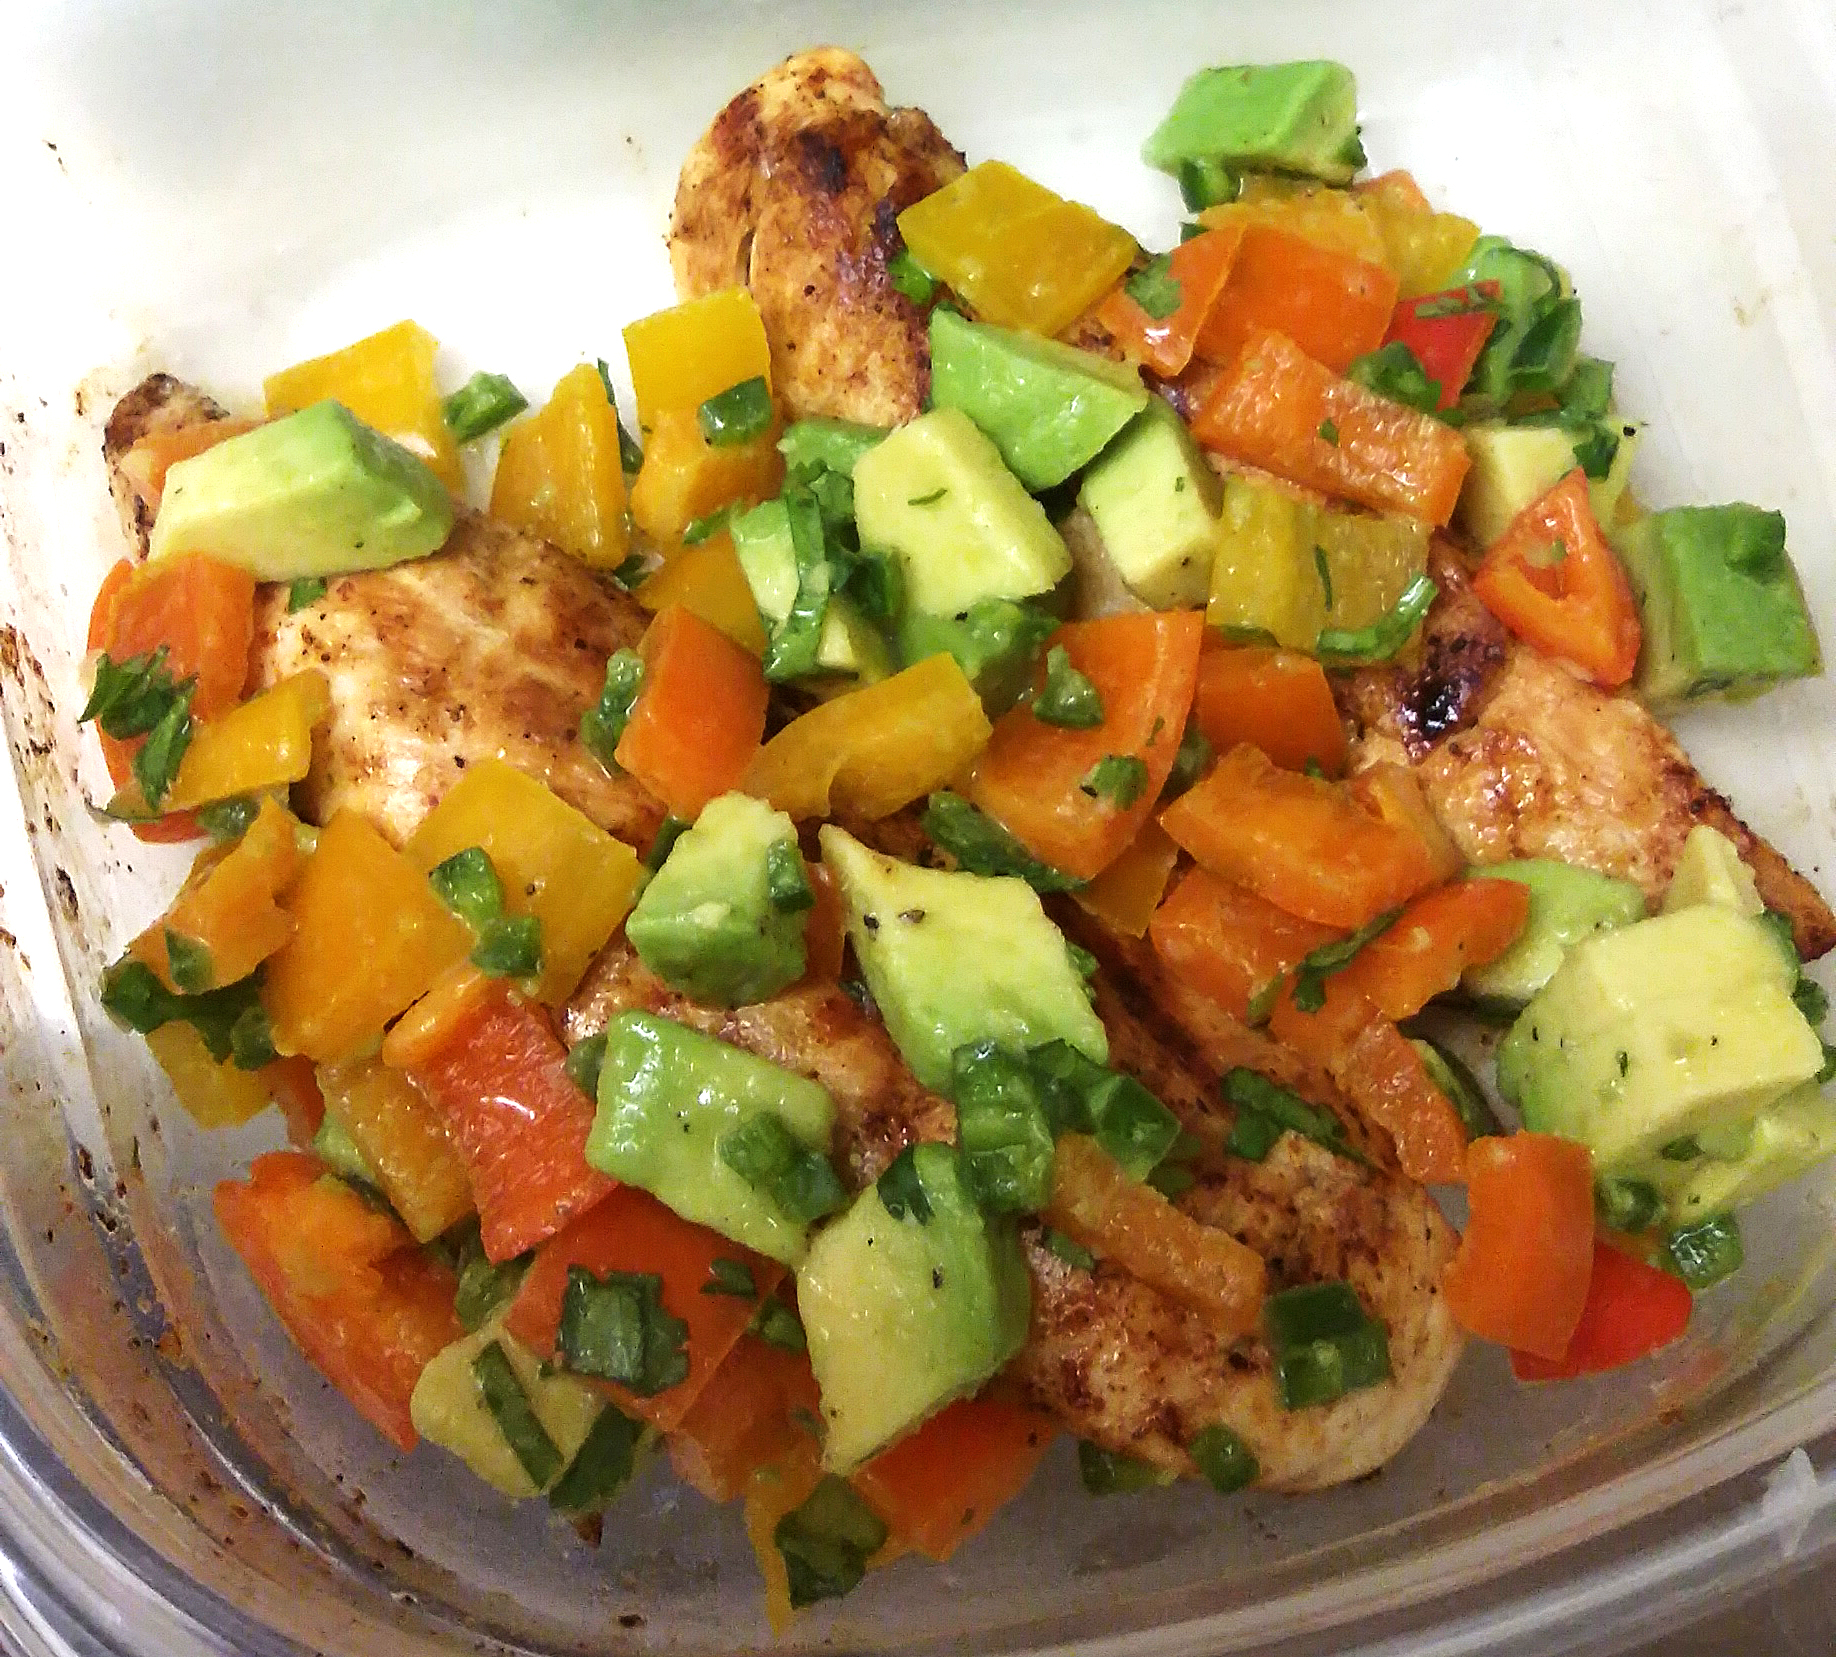 Cilantro Lime Chicken with Avocado Pepper Salsa - Oh Snap! Let's Eat!